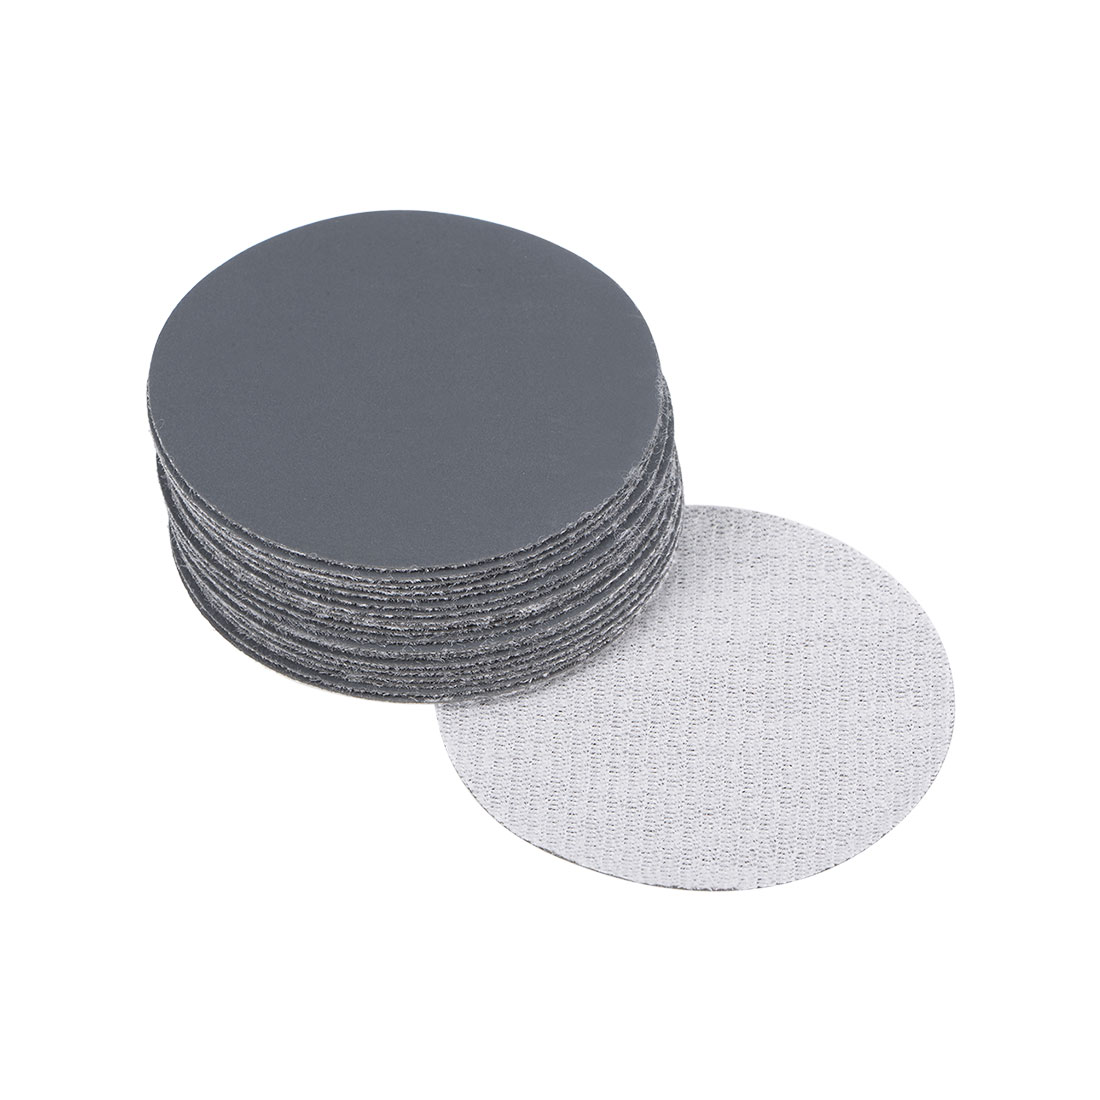 2 inch Wet Dry Discs 2500 Grit Hook and Loop Sanding Disc Silicon Carbide 20pcs